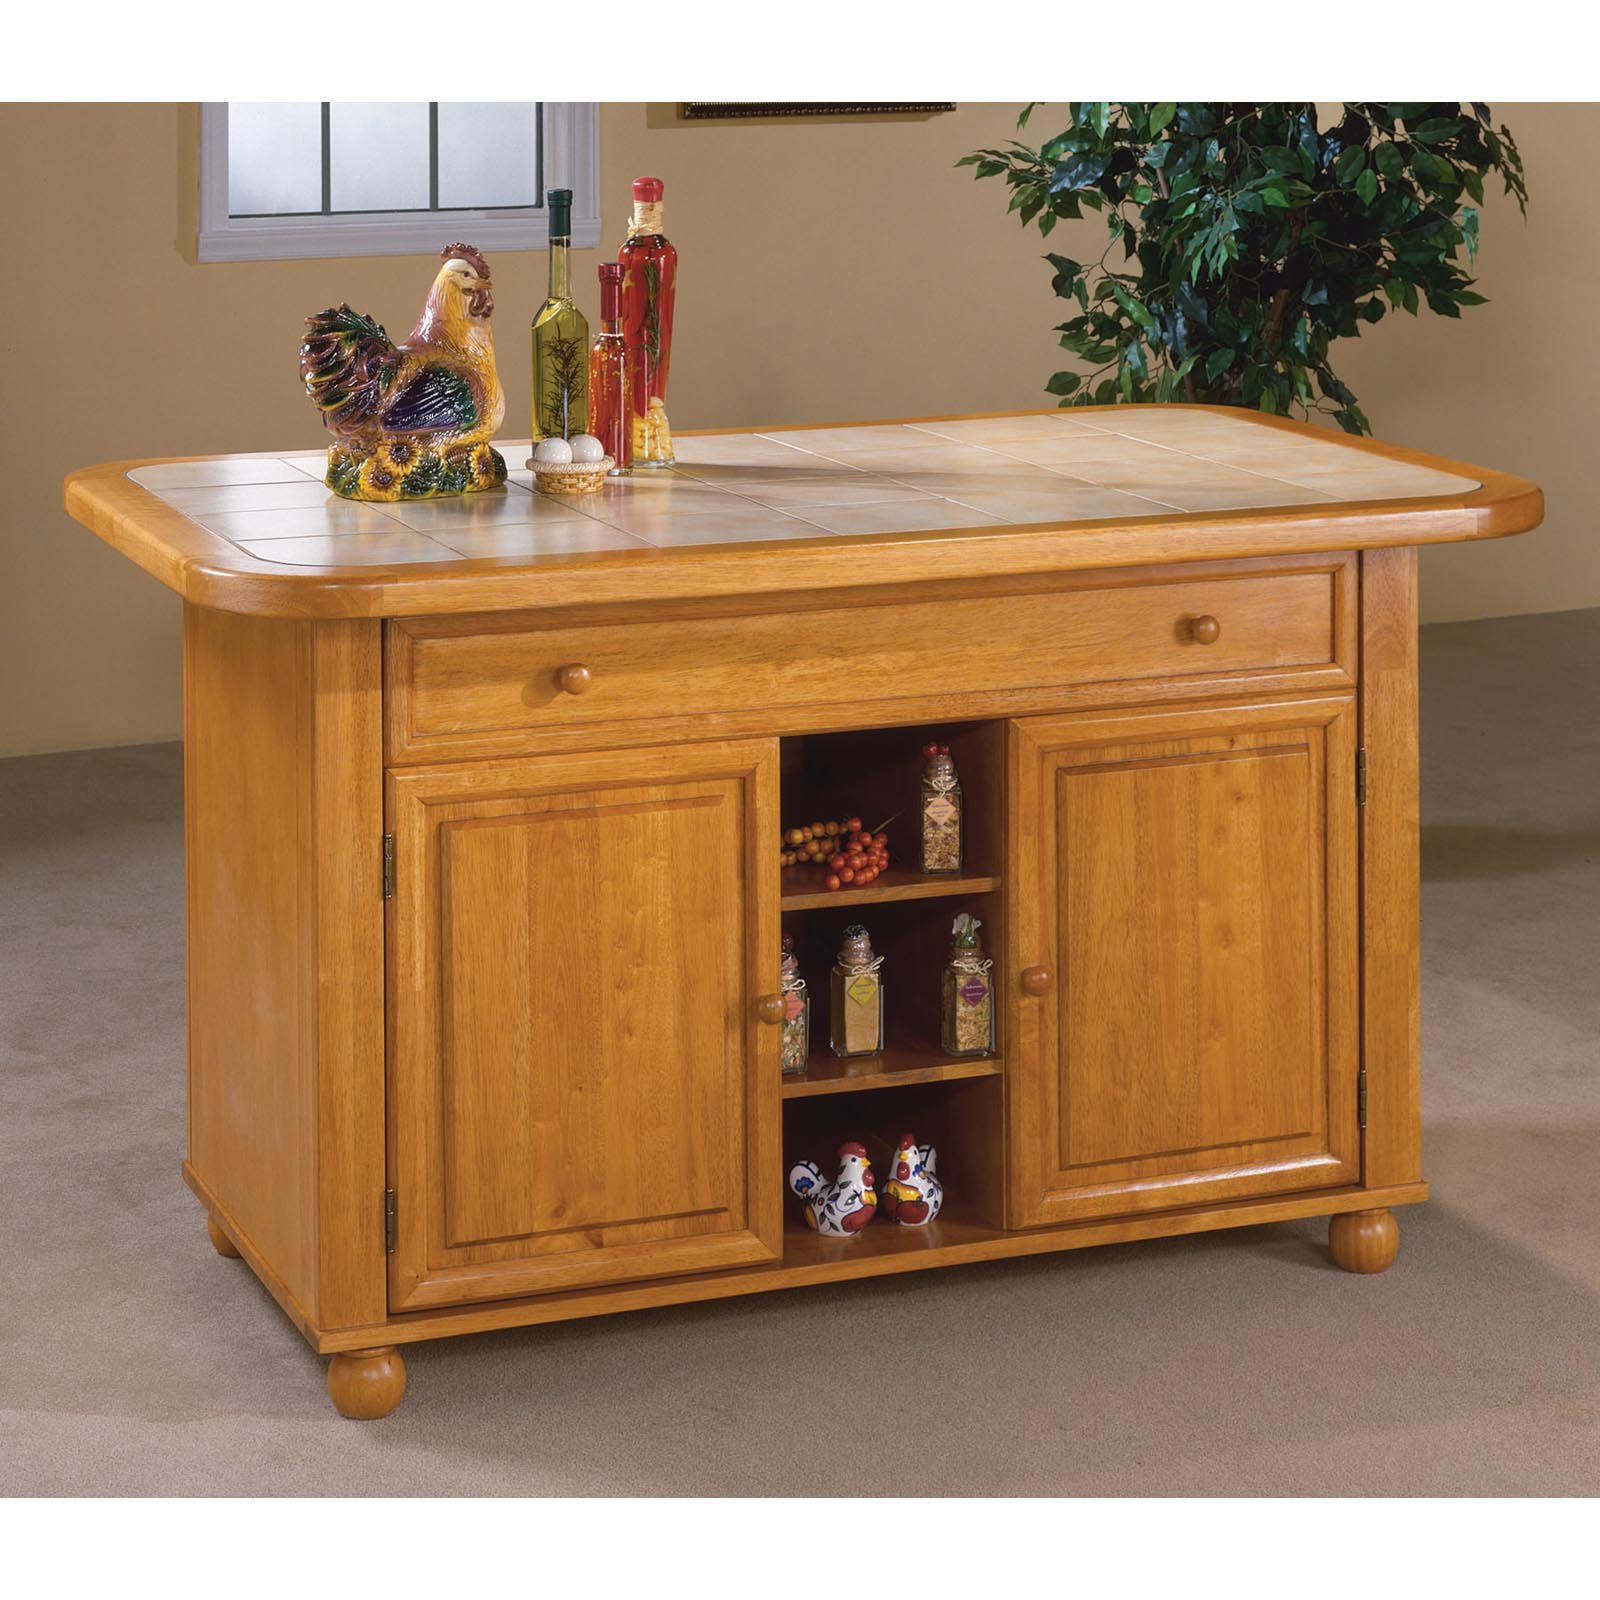 Uncategorized Sunset Trading Kitchen Island sunset trading julian kitchen island with sliding ceramic tile top walmart com